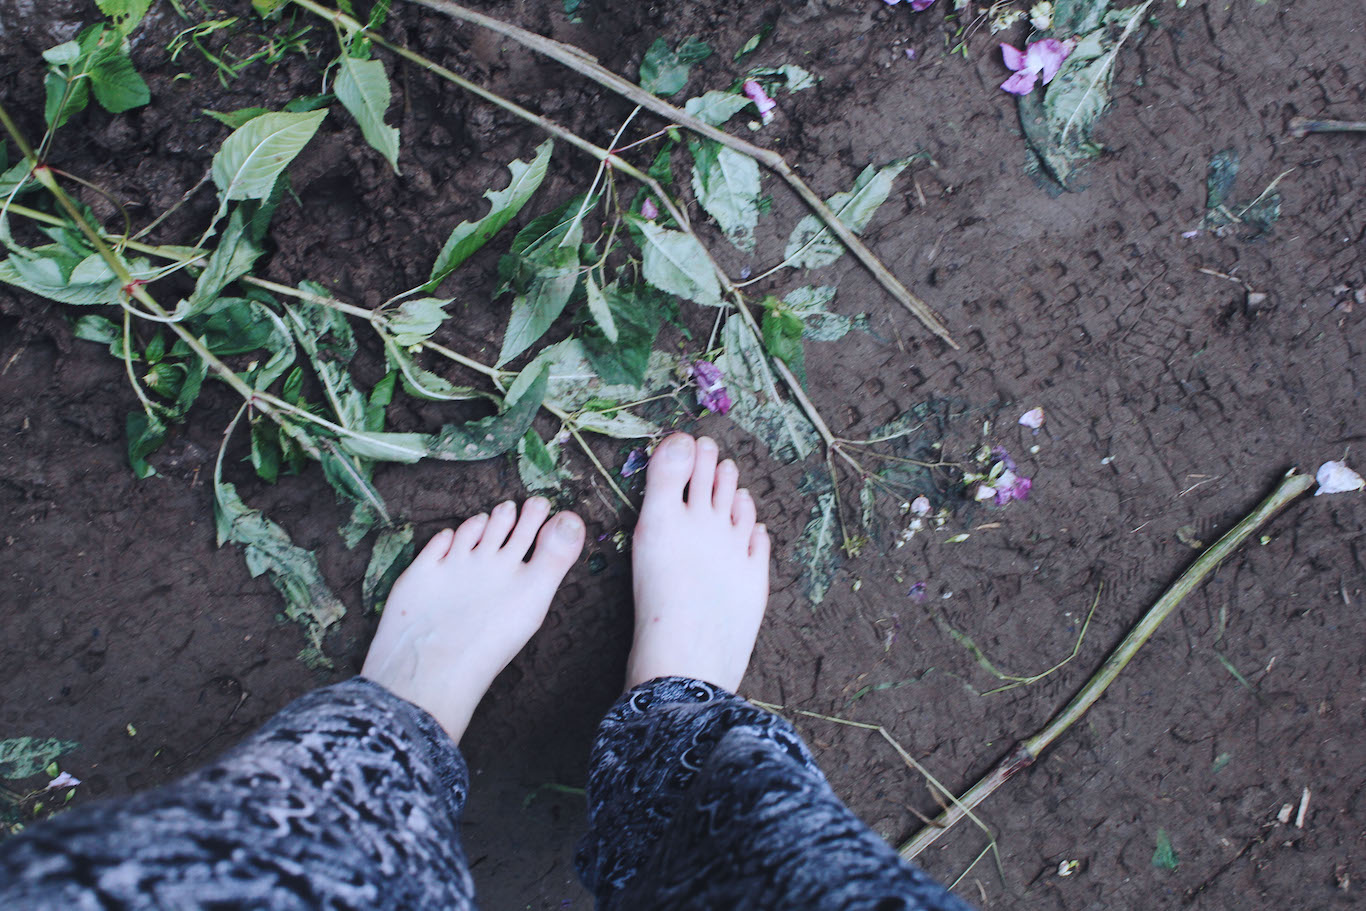 My feet and crushed flowers